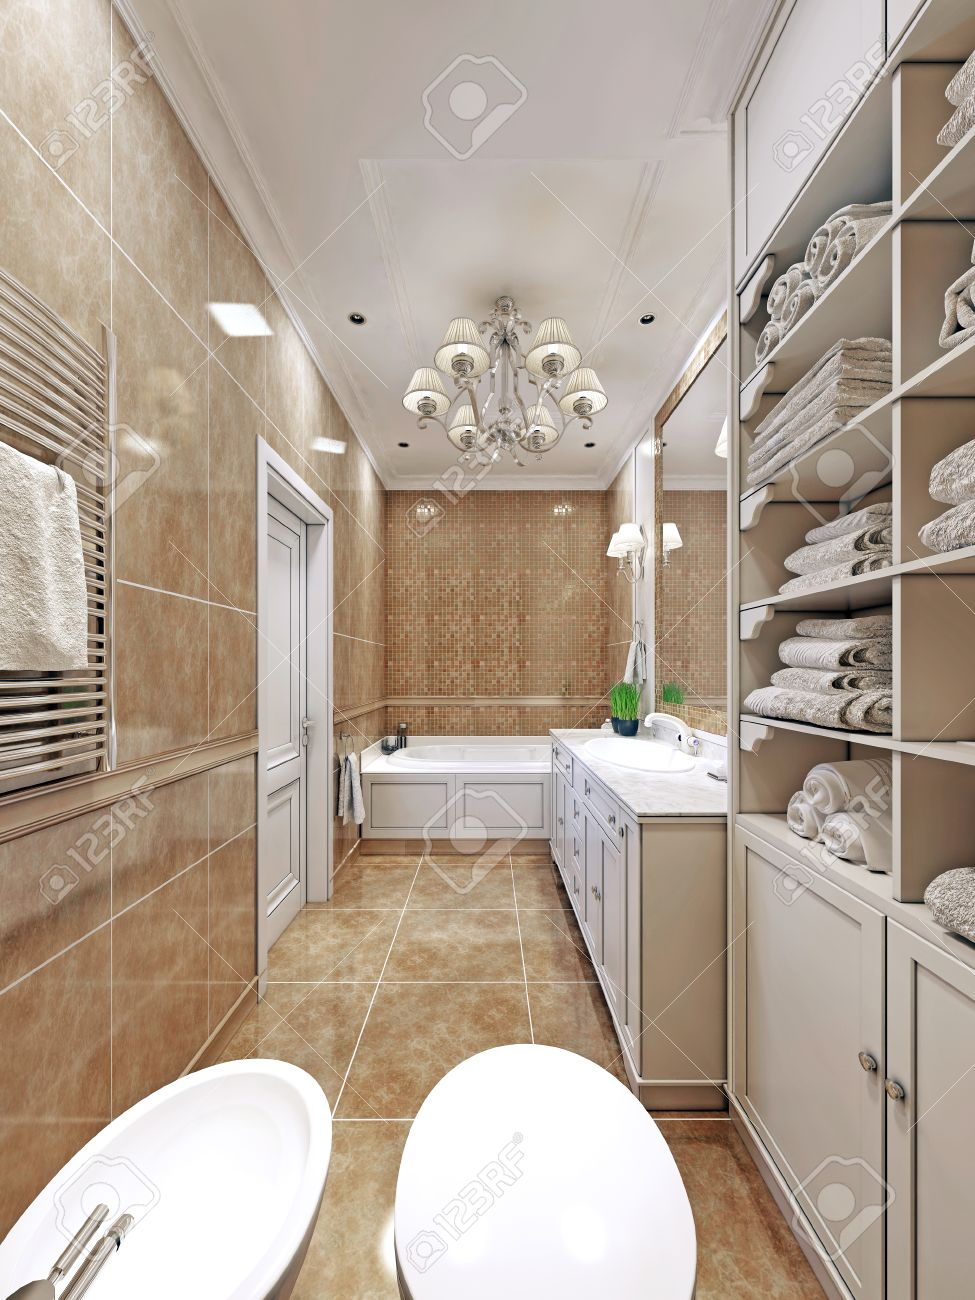 Long bathroom tiles - Elegant Provence Bathroom Design Long Bathroom With Wall Tiles Luxury Chandelier And White Multi